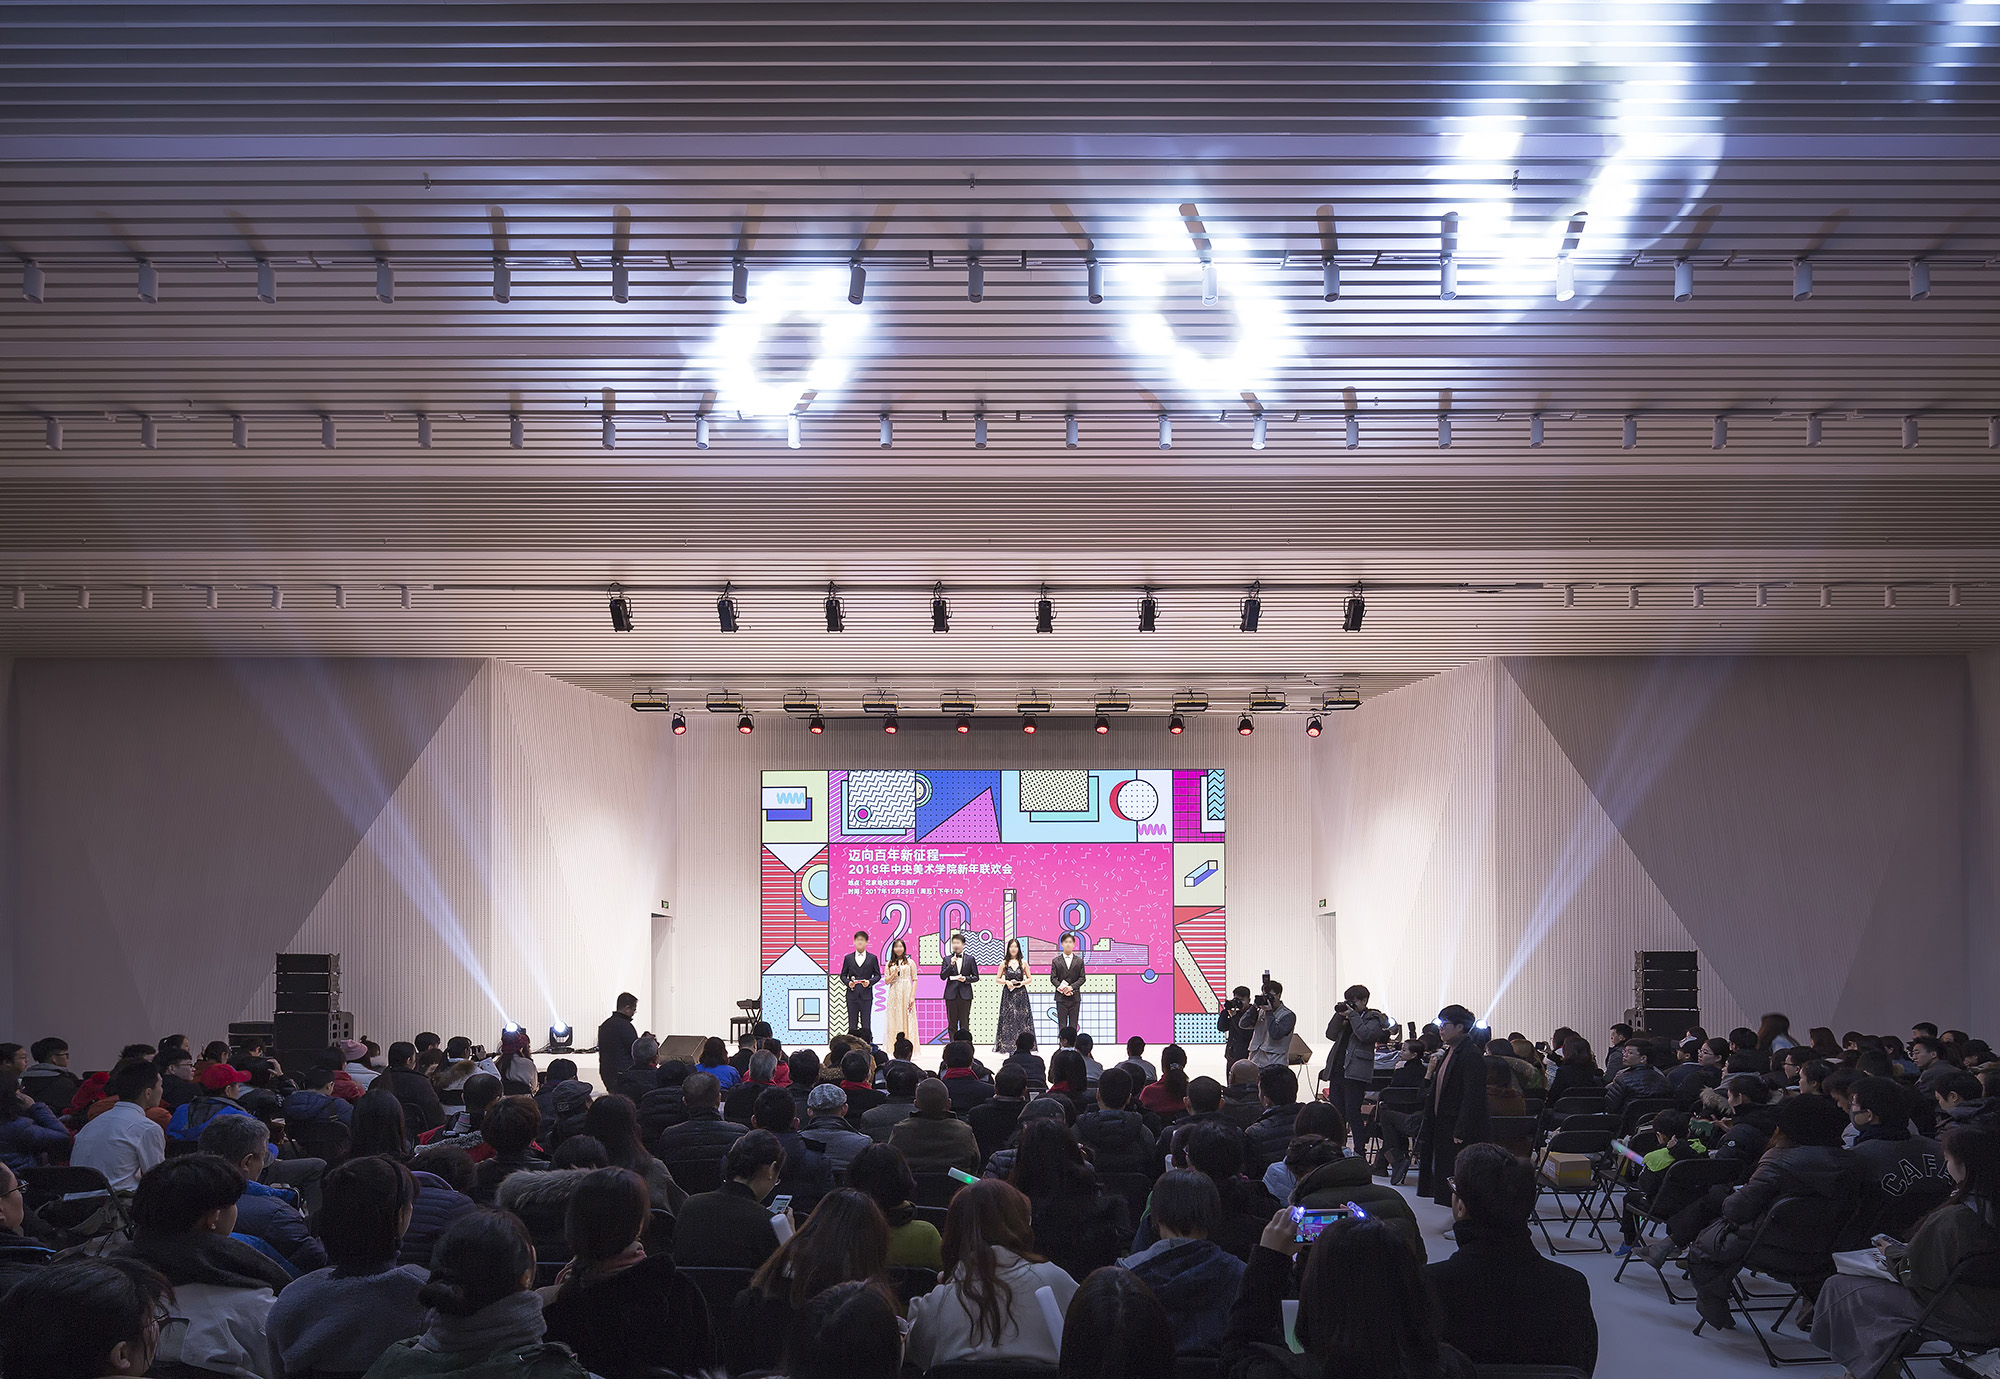 Multifunctional hall with show and lighting